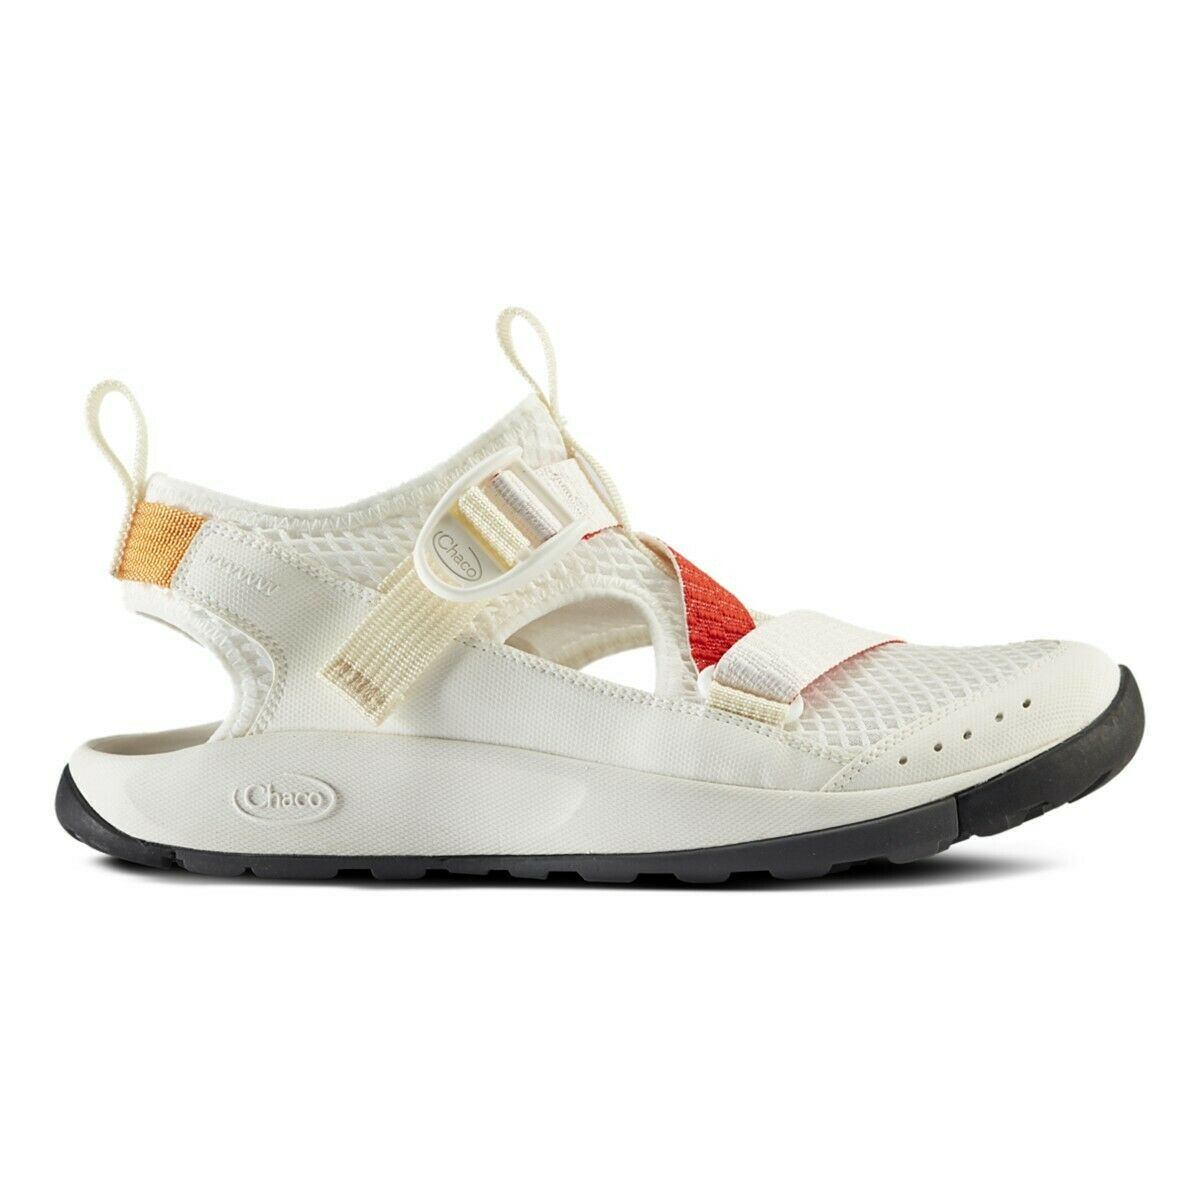 Chaco Womens Odyssey Sandal, White